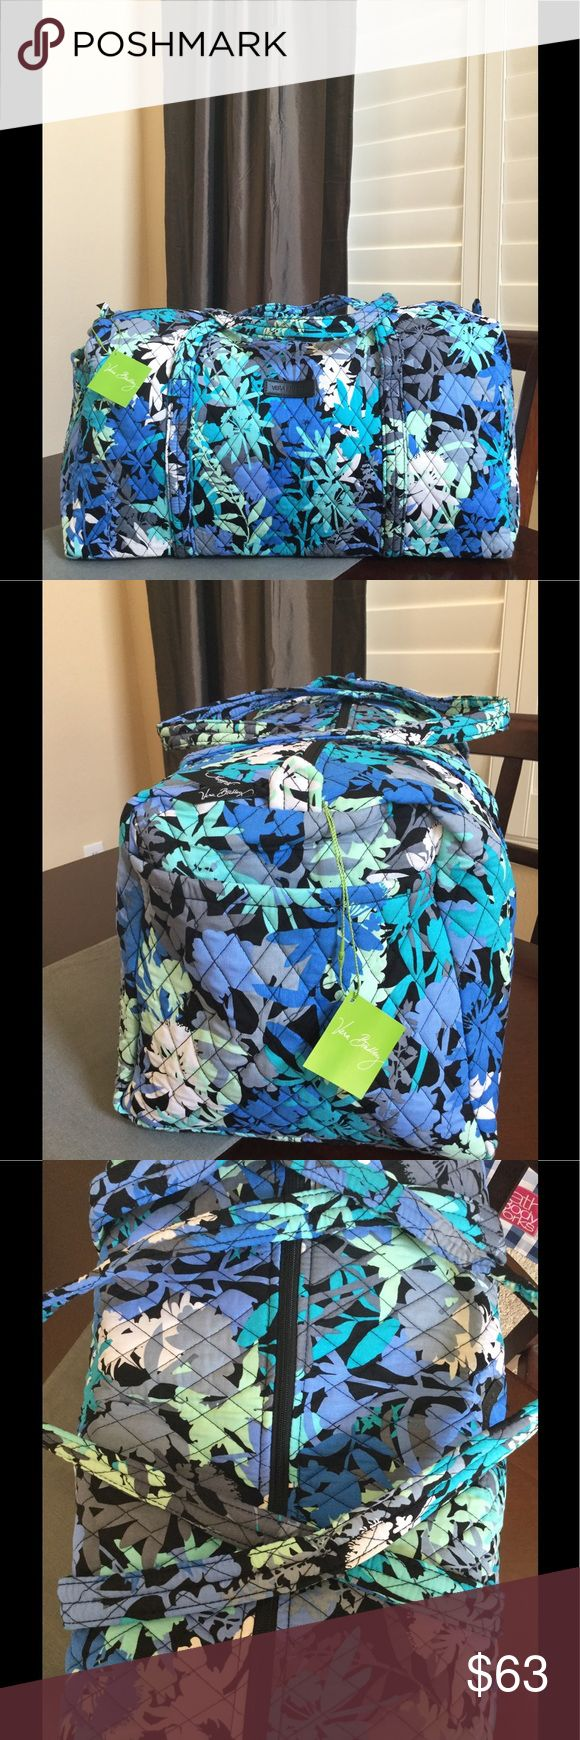 """NWT VERA BRADLEY LARGE DUFFEL Brand new with tags Vera Bradley large duffel  Camofloral pattern  15"""" strap drop Handy outside end pocket Folds flat for easy storing Dimensions 22"""" W x 11½"""" H x 11½"""" D - 15"""" strap drop  Smoke/pet free home Vera Bradley Bags Travel Bags"""